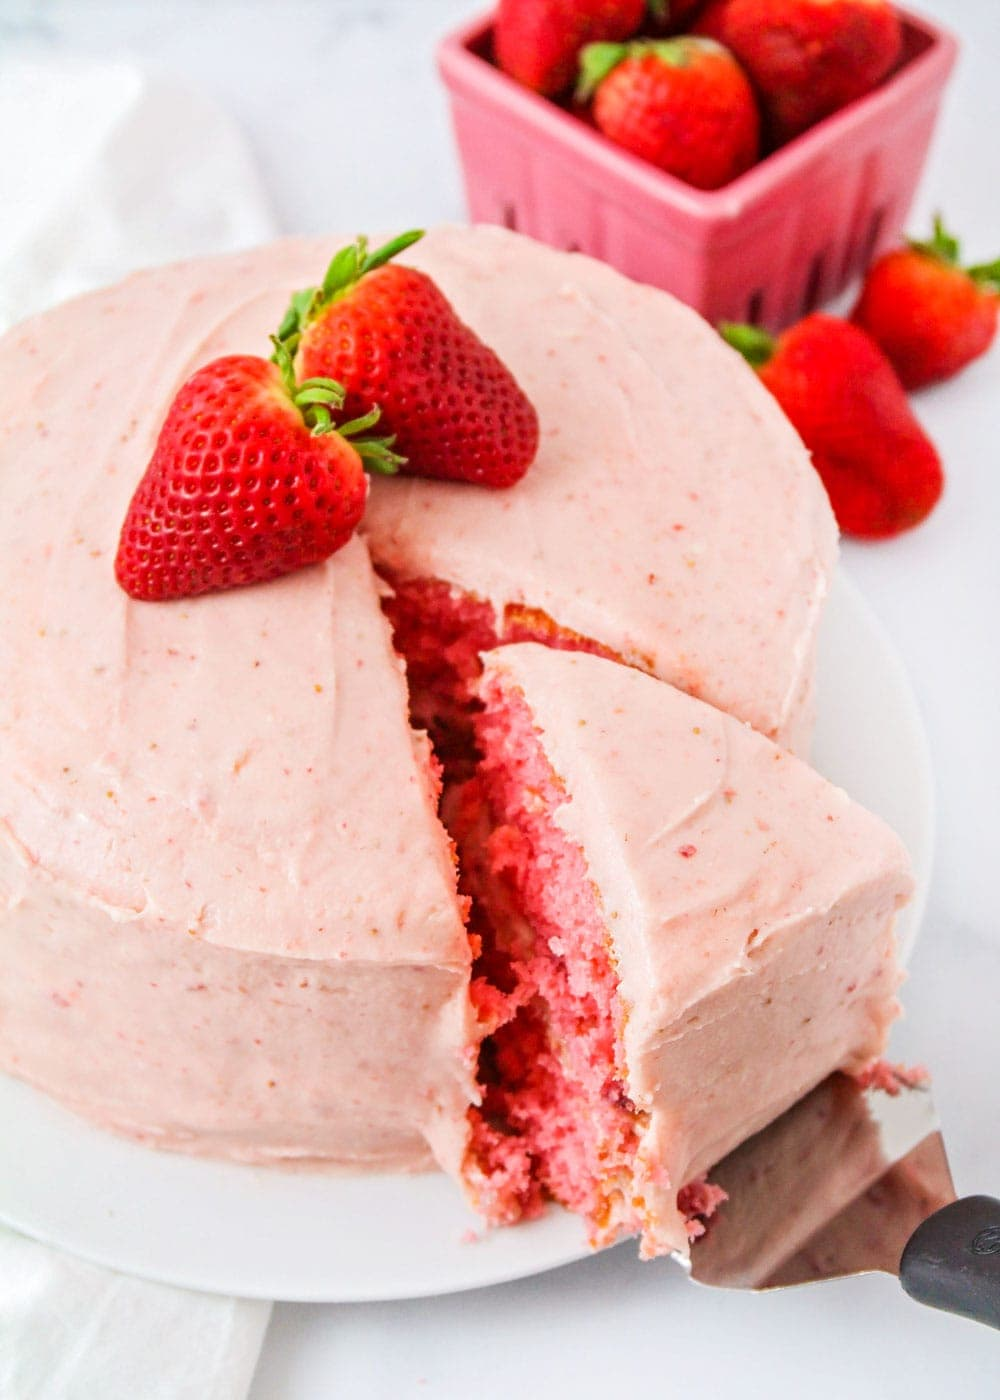 Strawberry frosting closeup pic